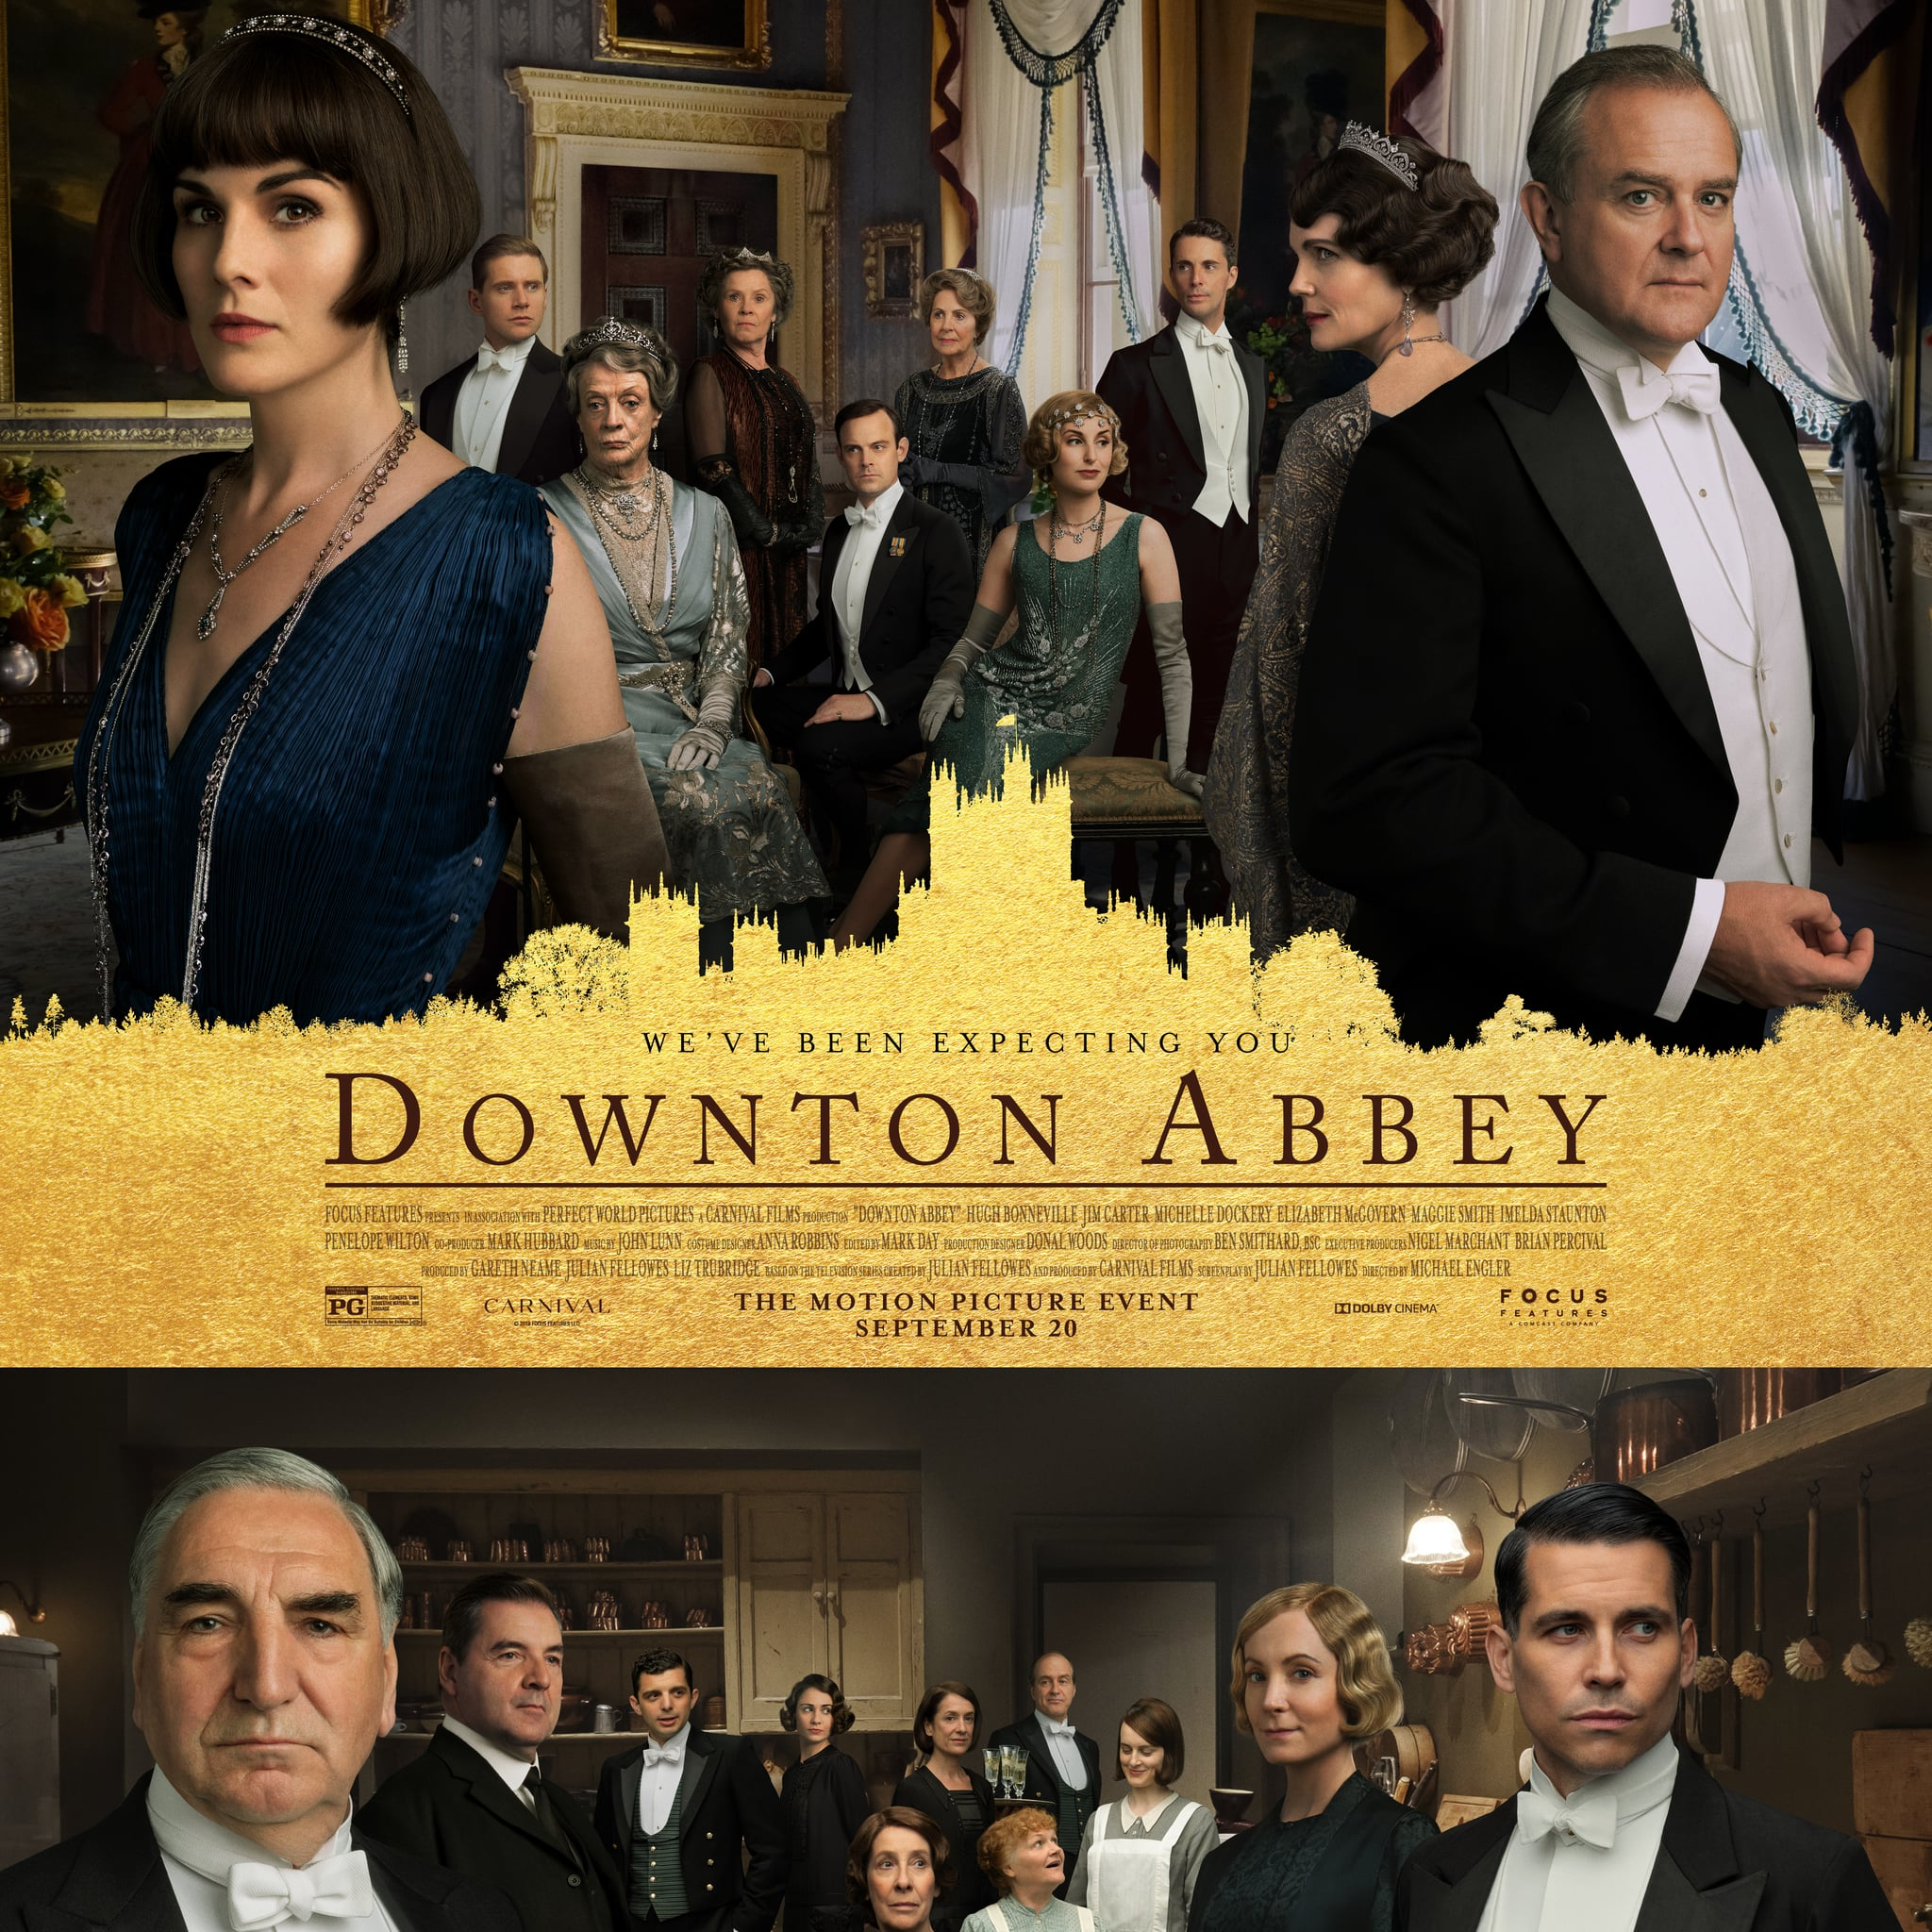 Downton-Abbey-Movie-Posters